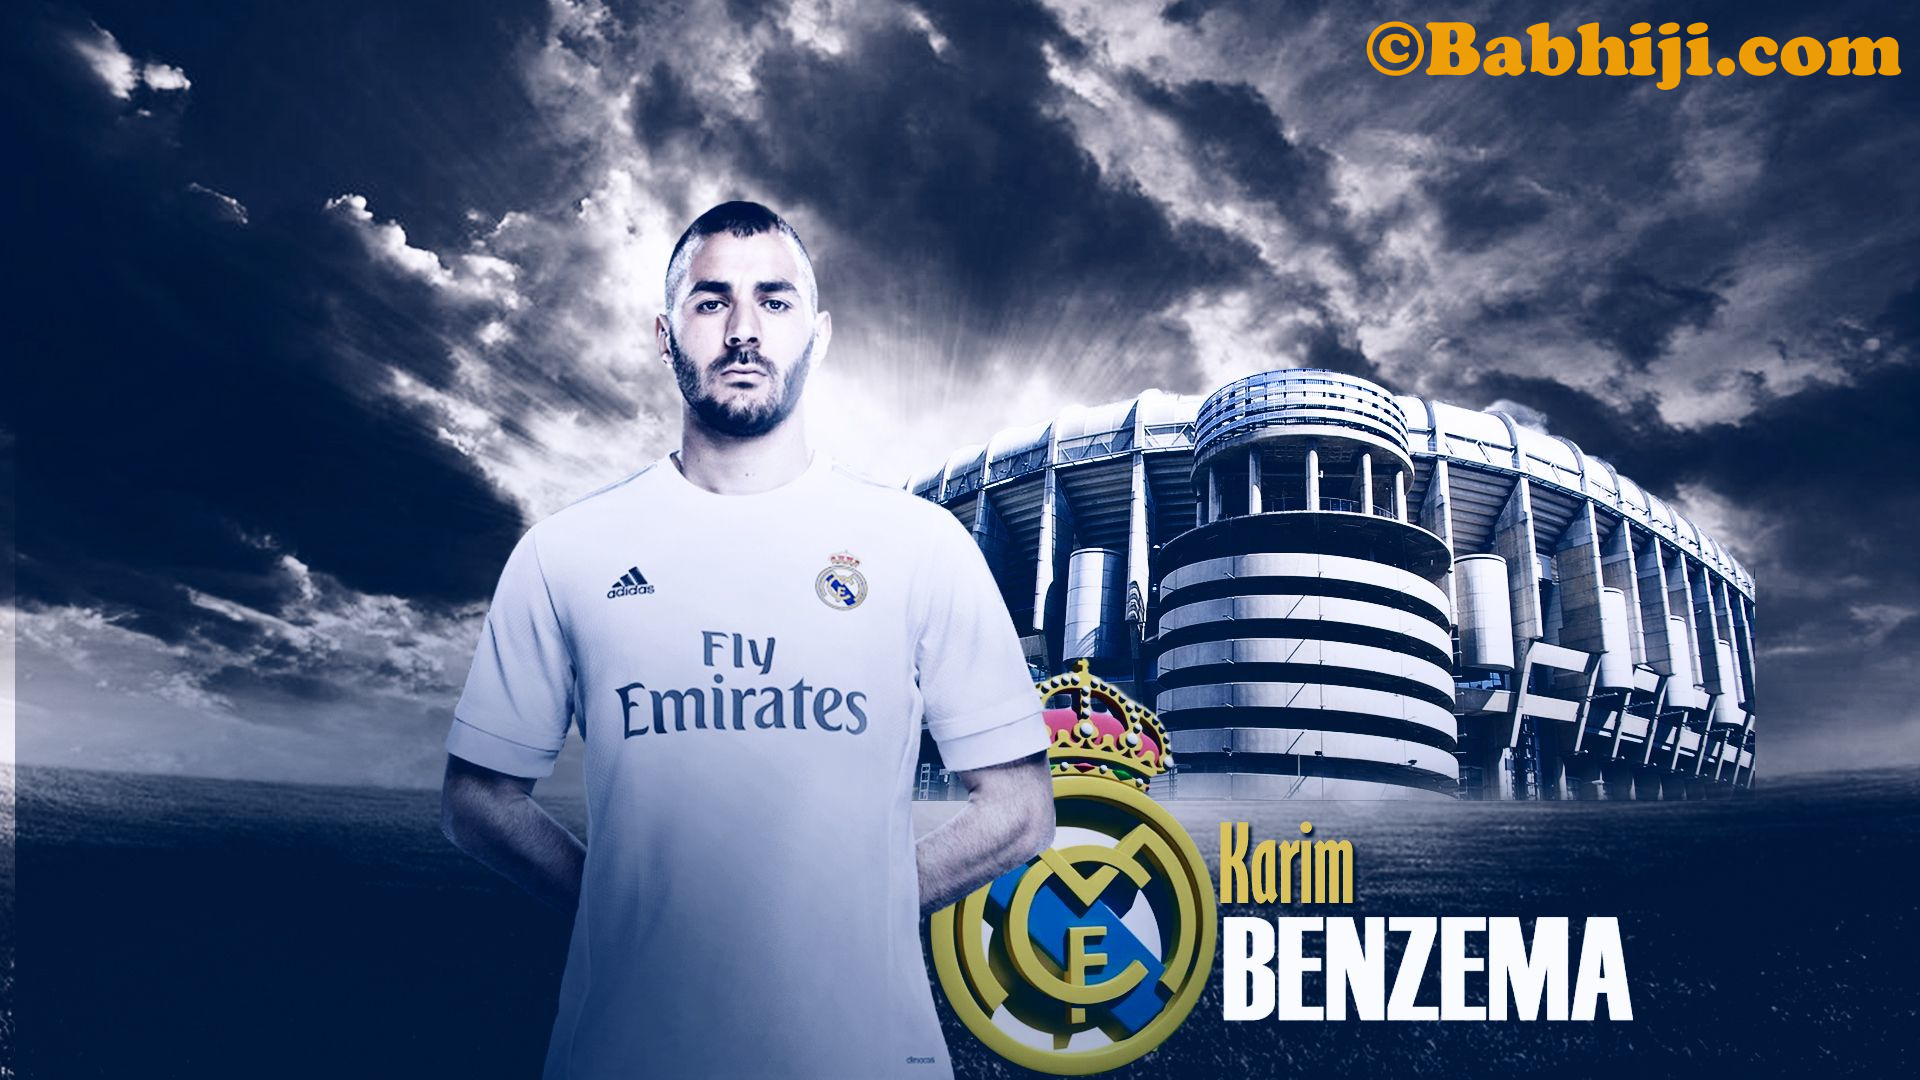 Benzema Wallpapers